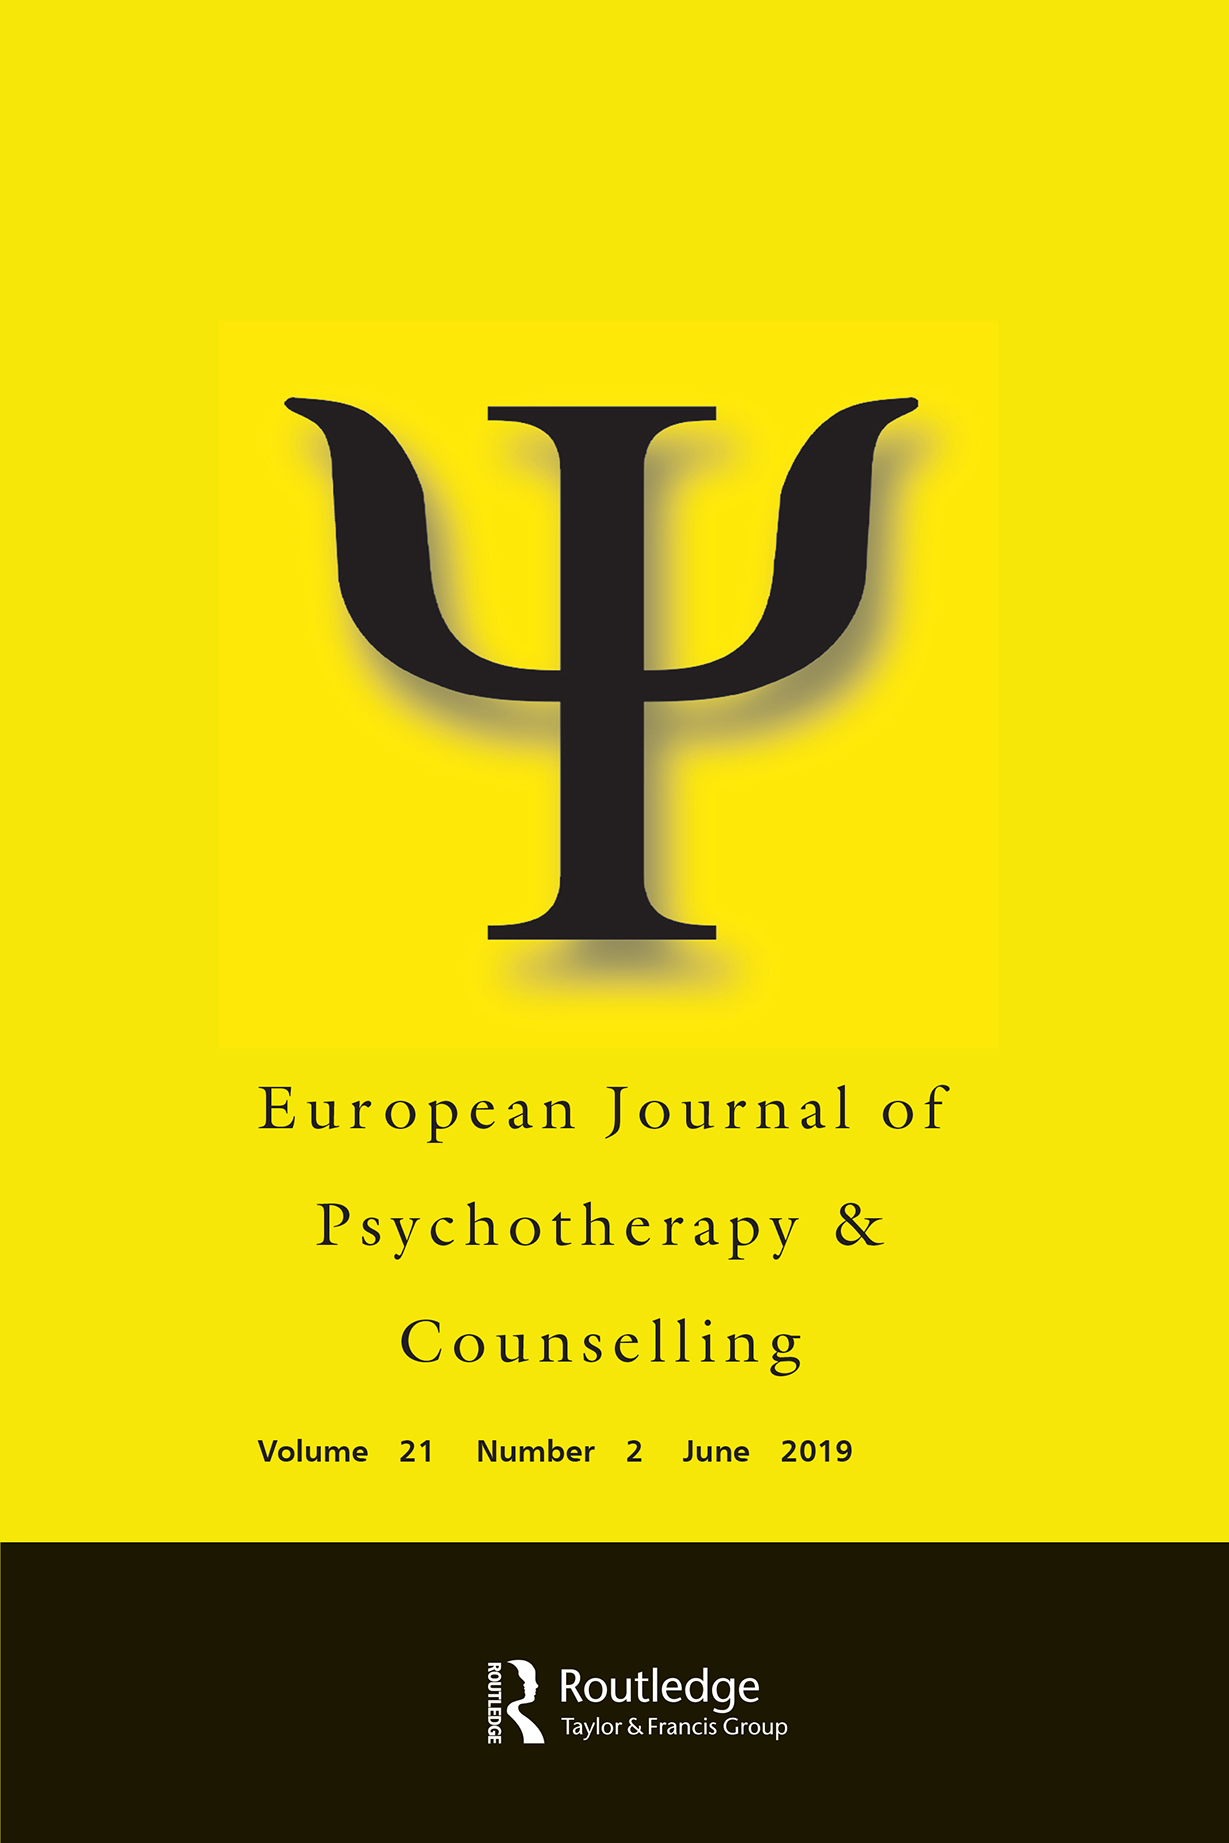 European Journal of Psychotherapy & Counselling: Vol 21, No 2